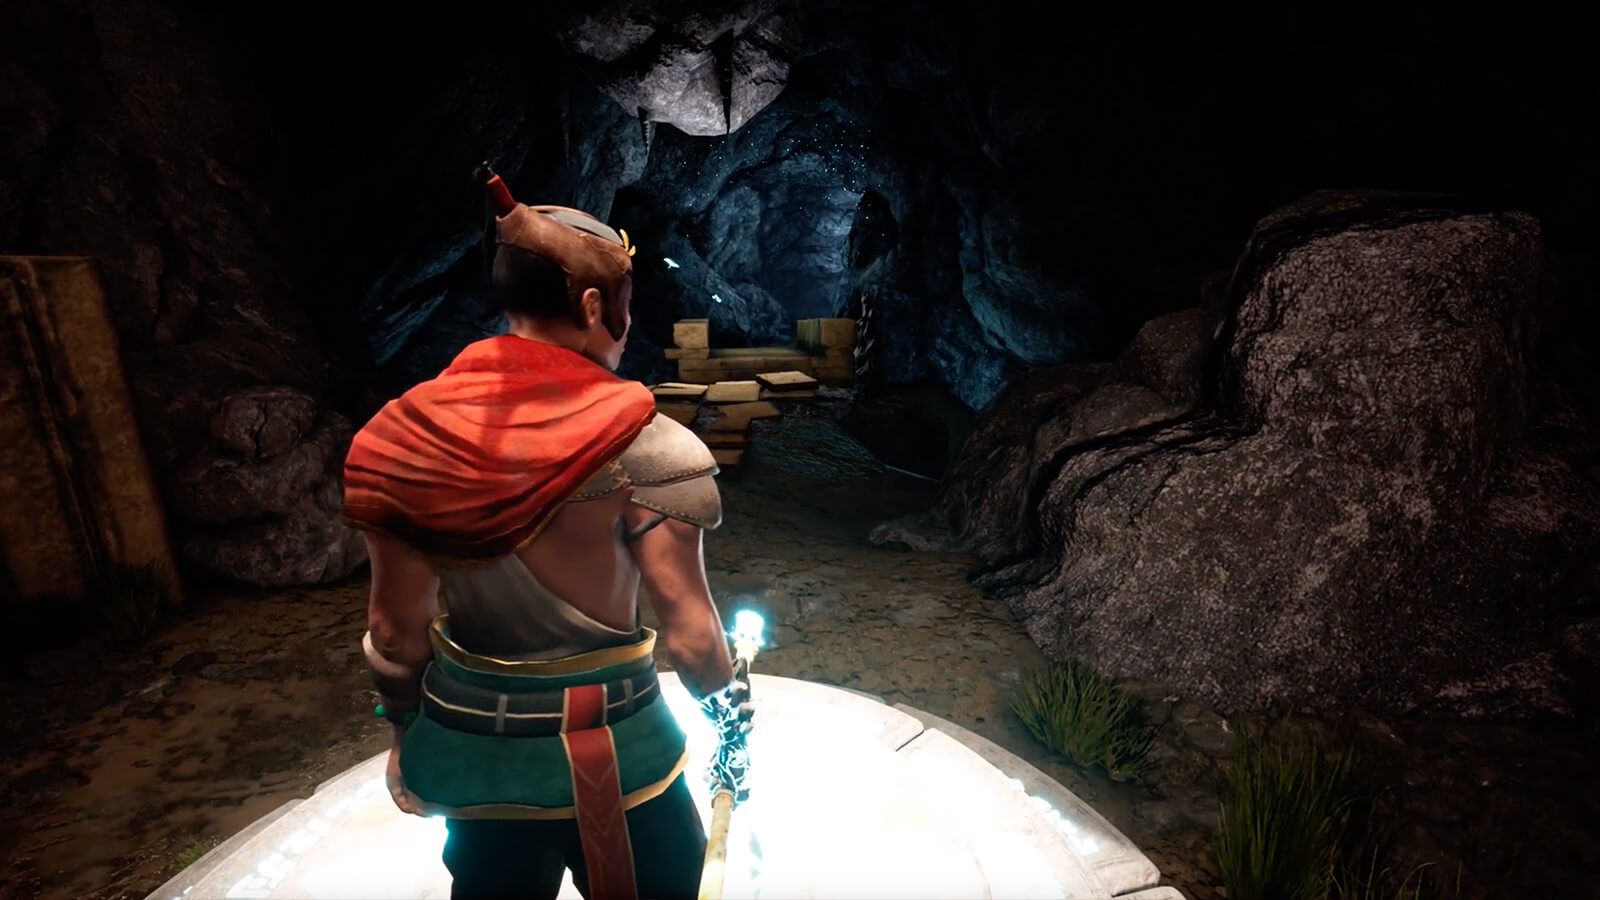 A man in a cavern holding a glowing spear.